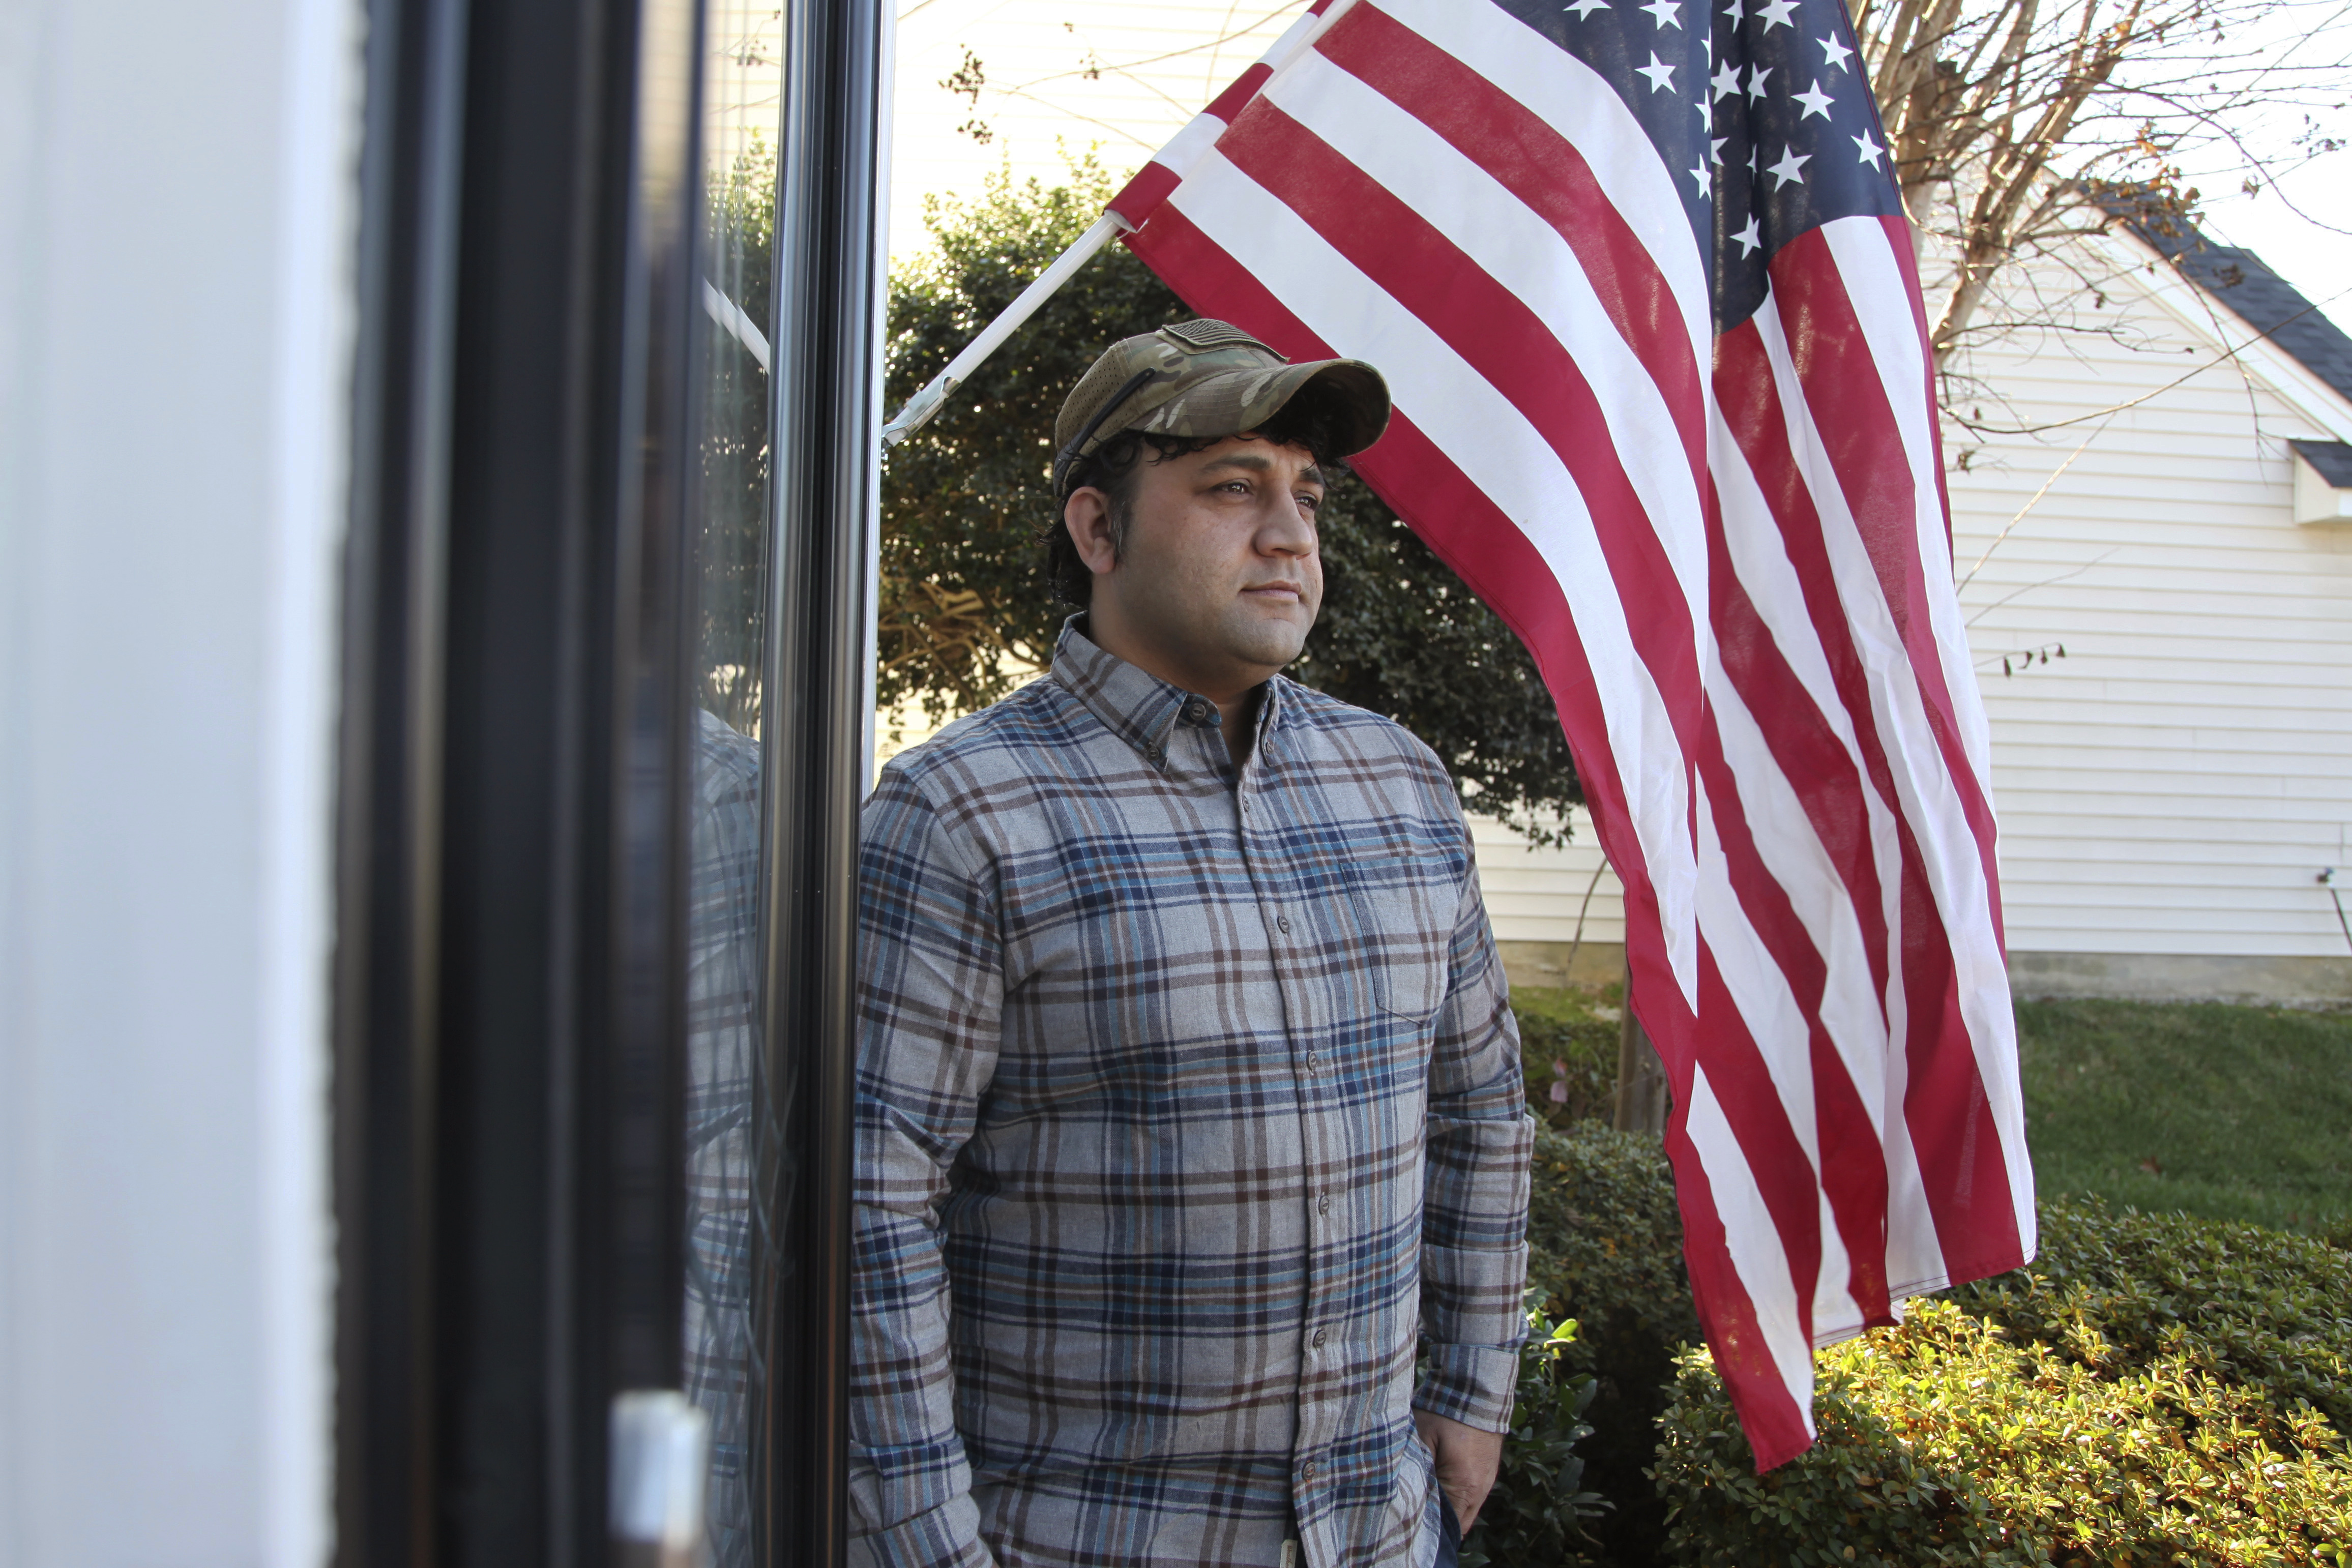 Zia Ghafoori stands beside an American flag hanging at his Charlotte, N.C., home on Dec. 16, 2019.